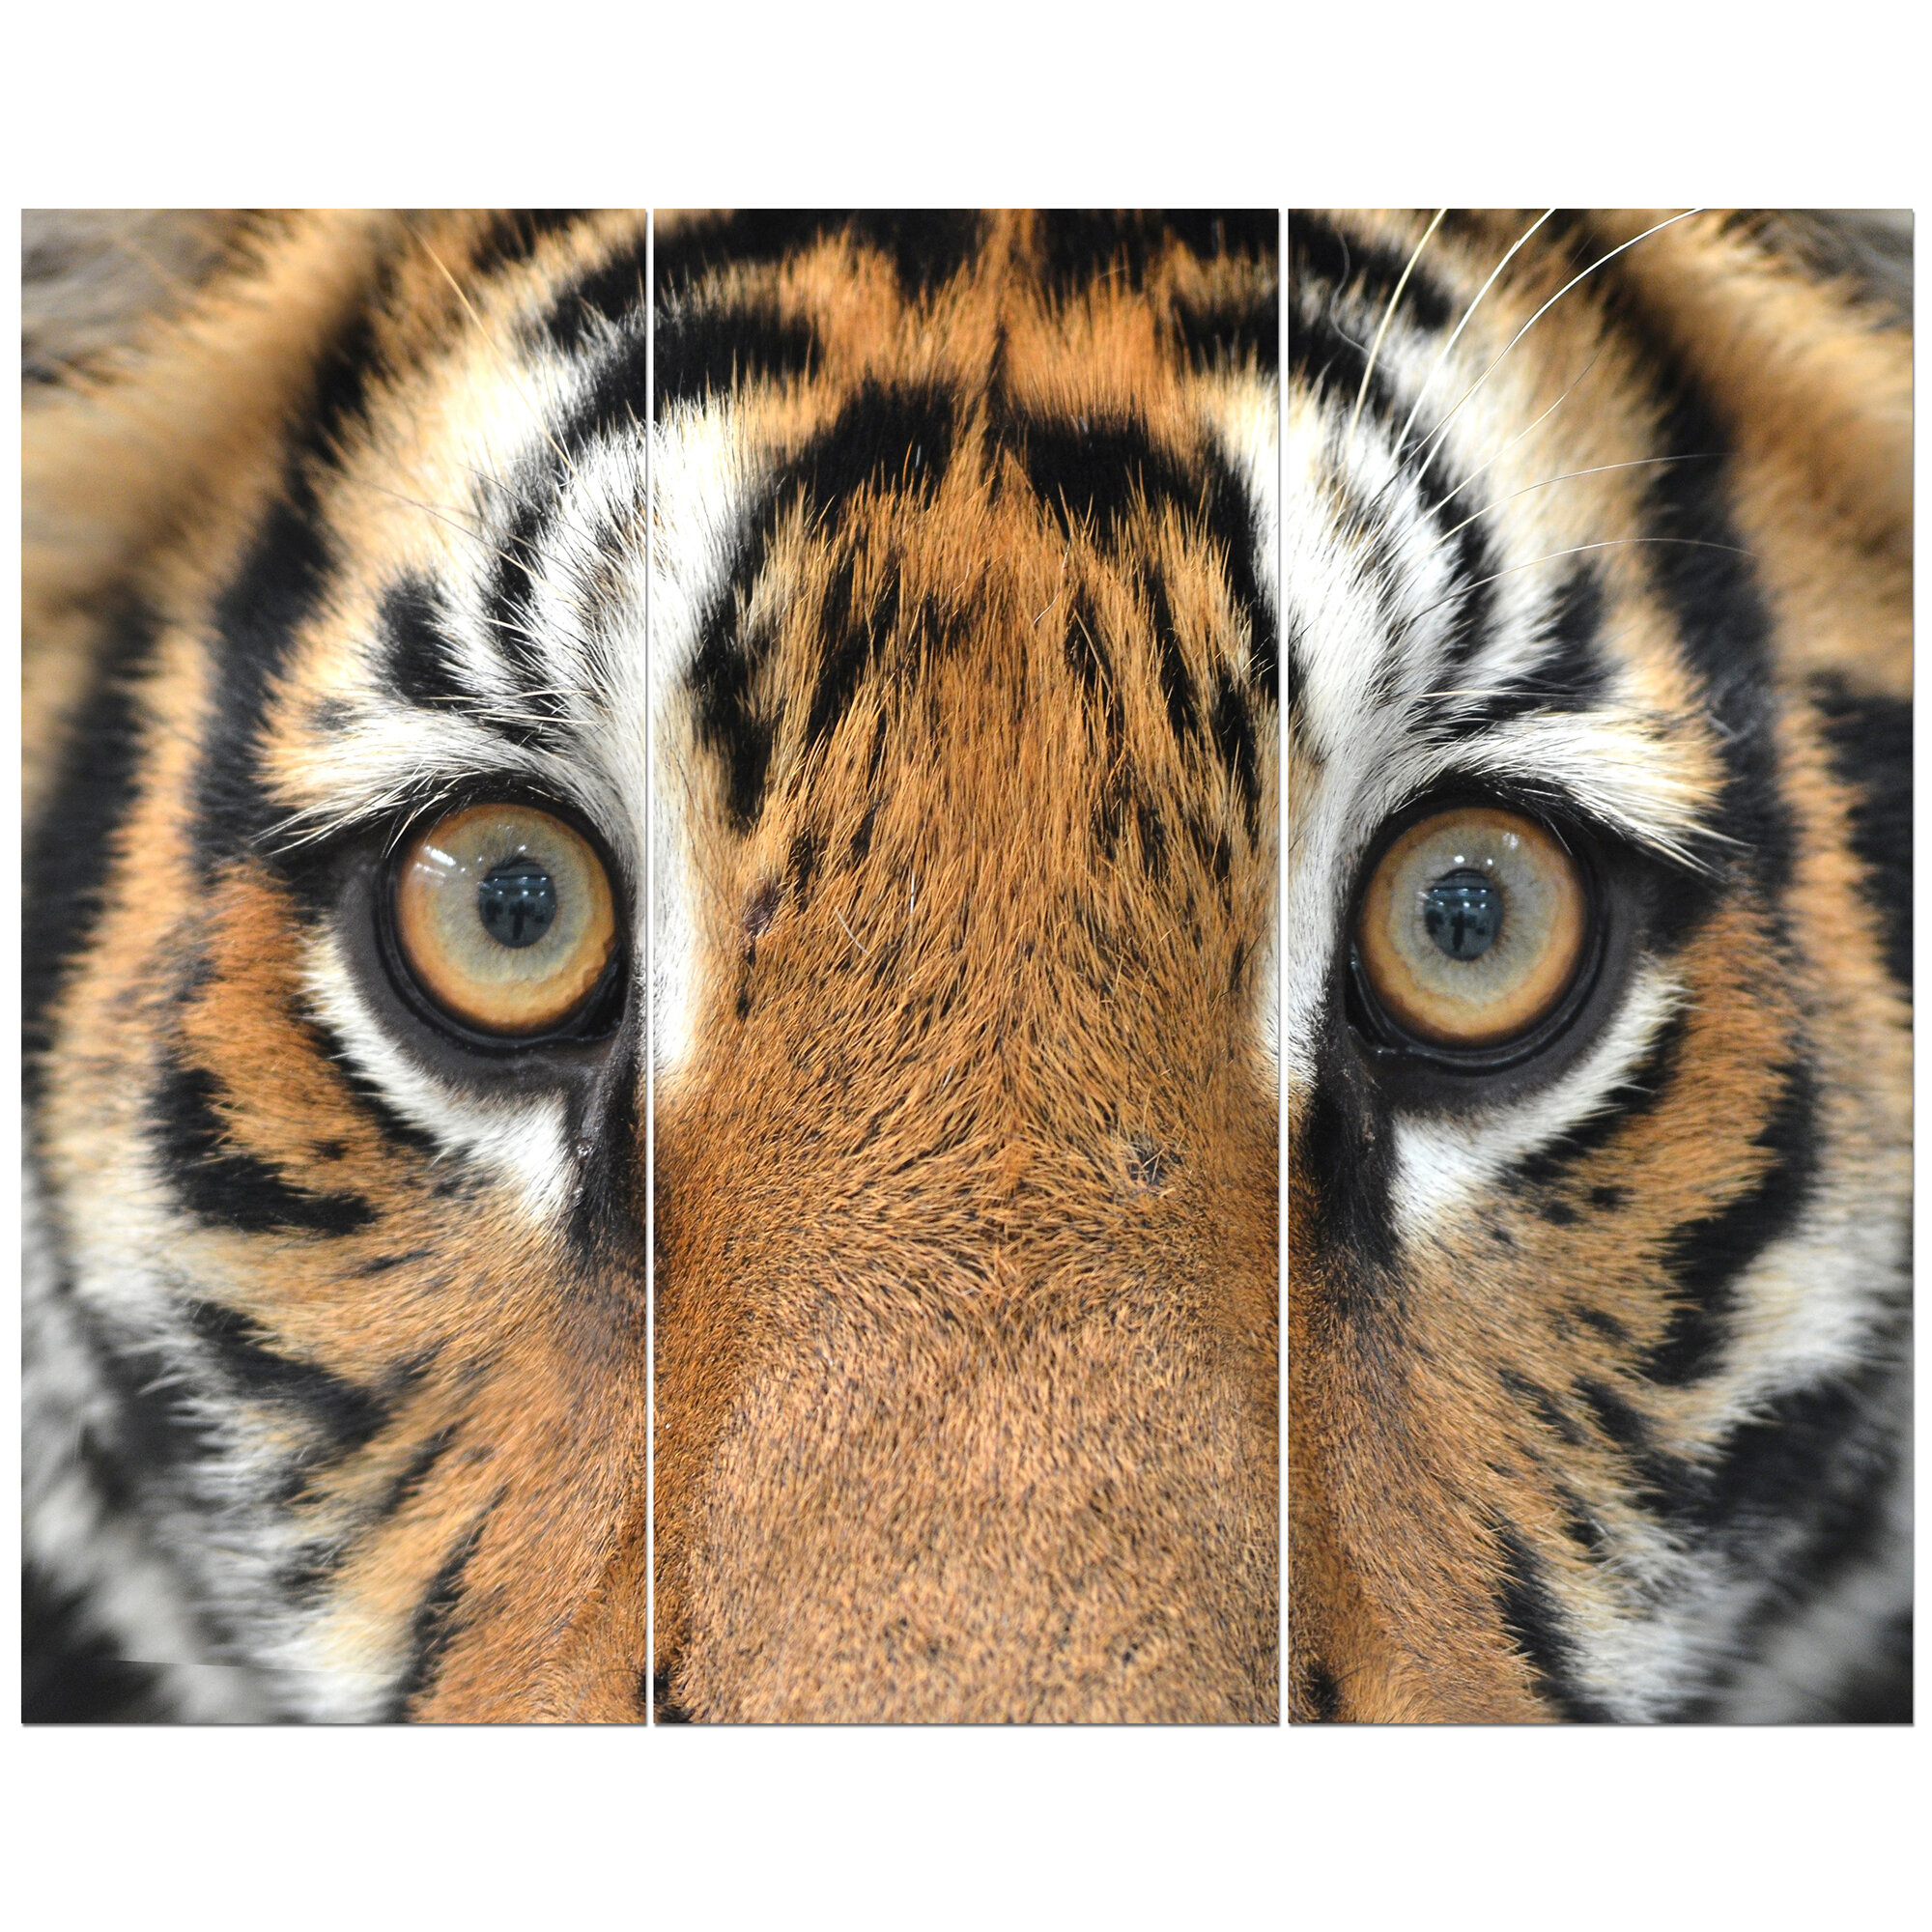 East Urban Home Bengal Tiger Eyes Photographic Print Multi Piece Image On Wrapped Canvas Wayfair